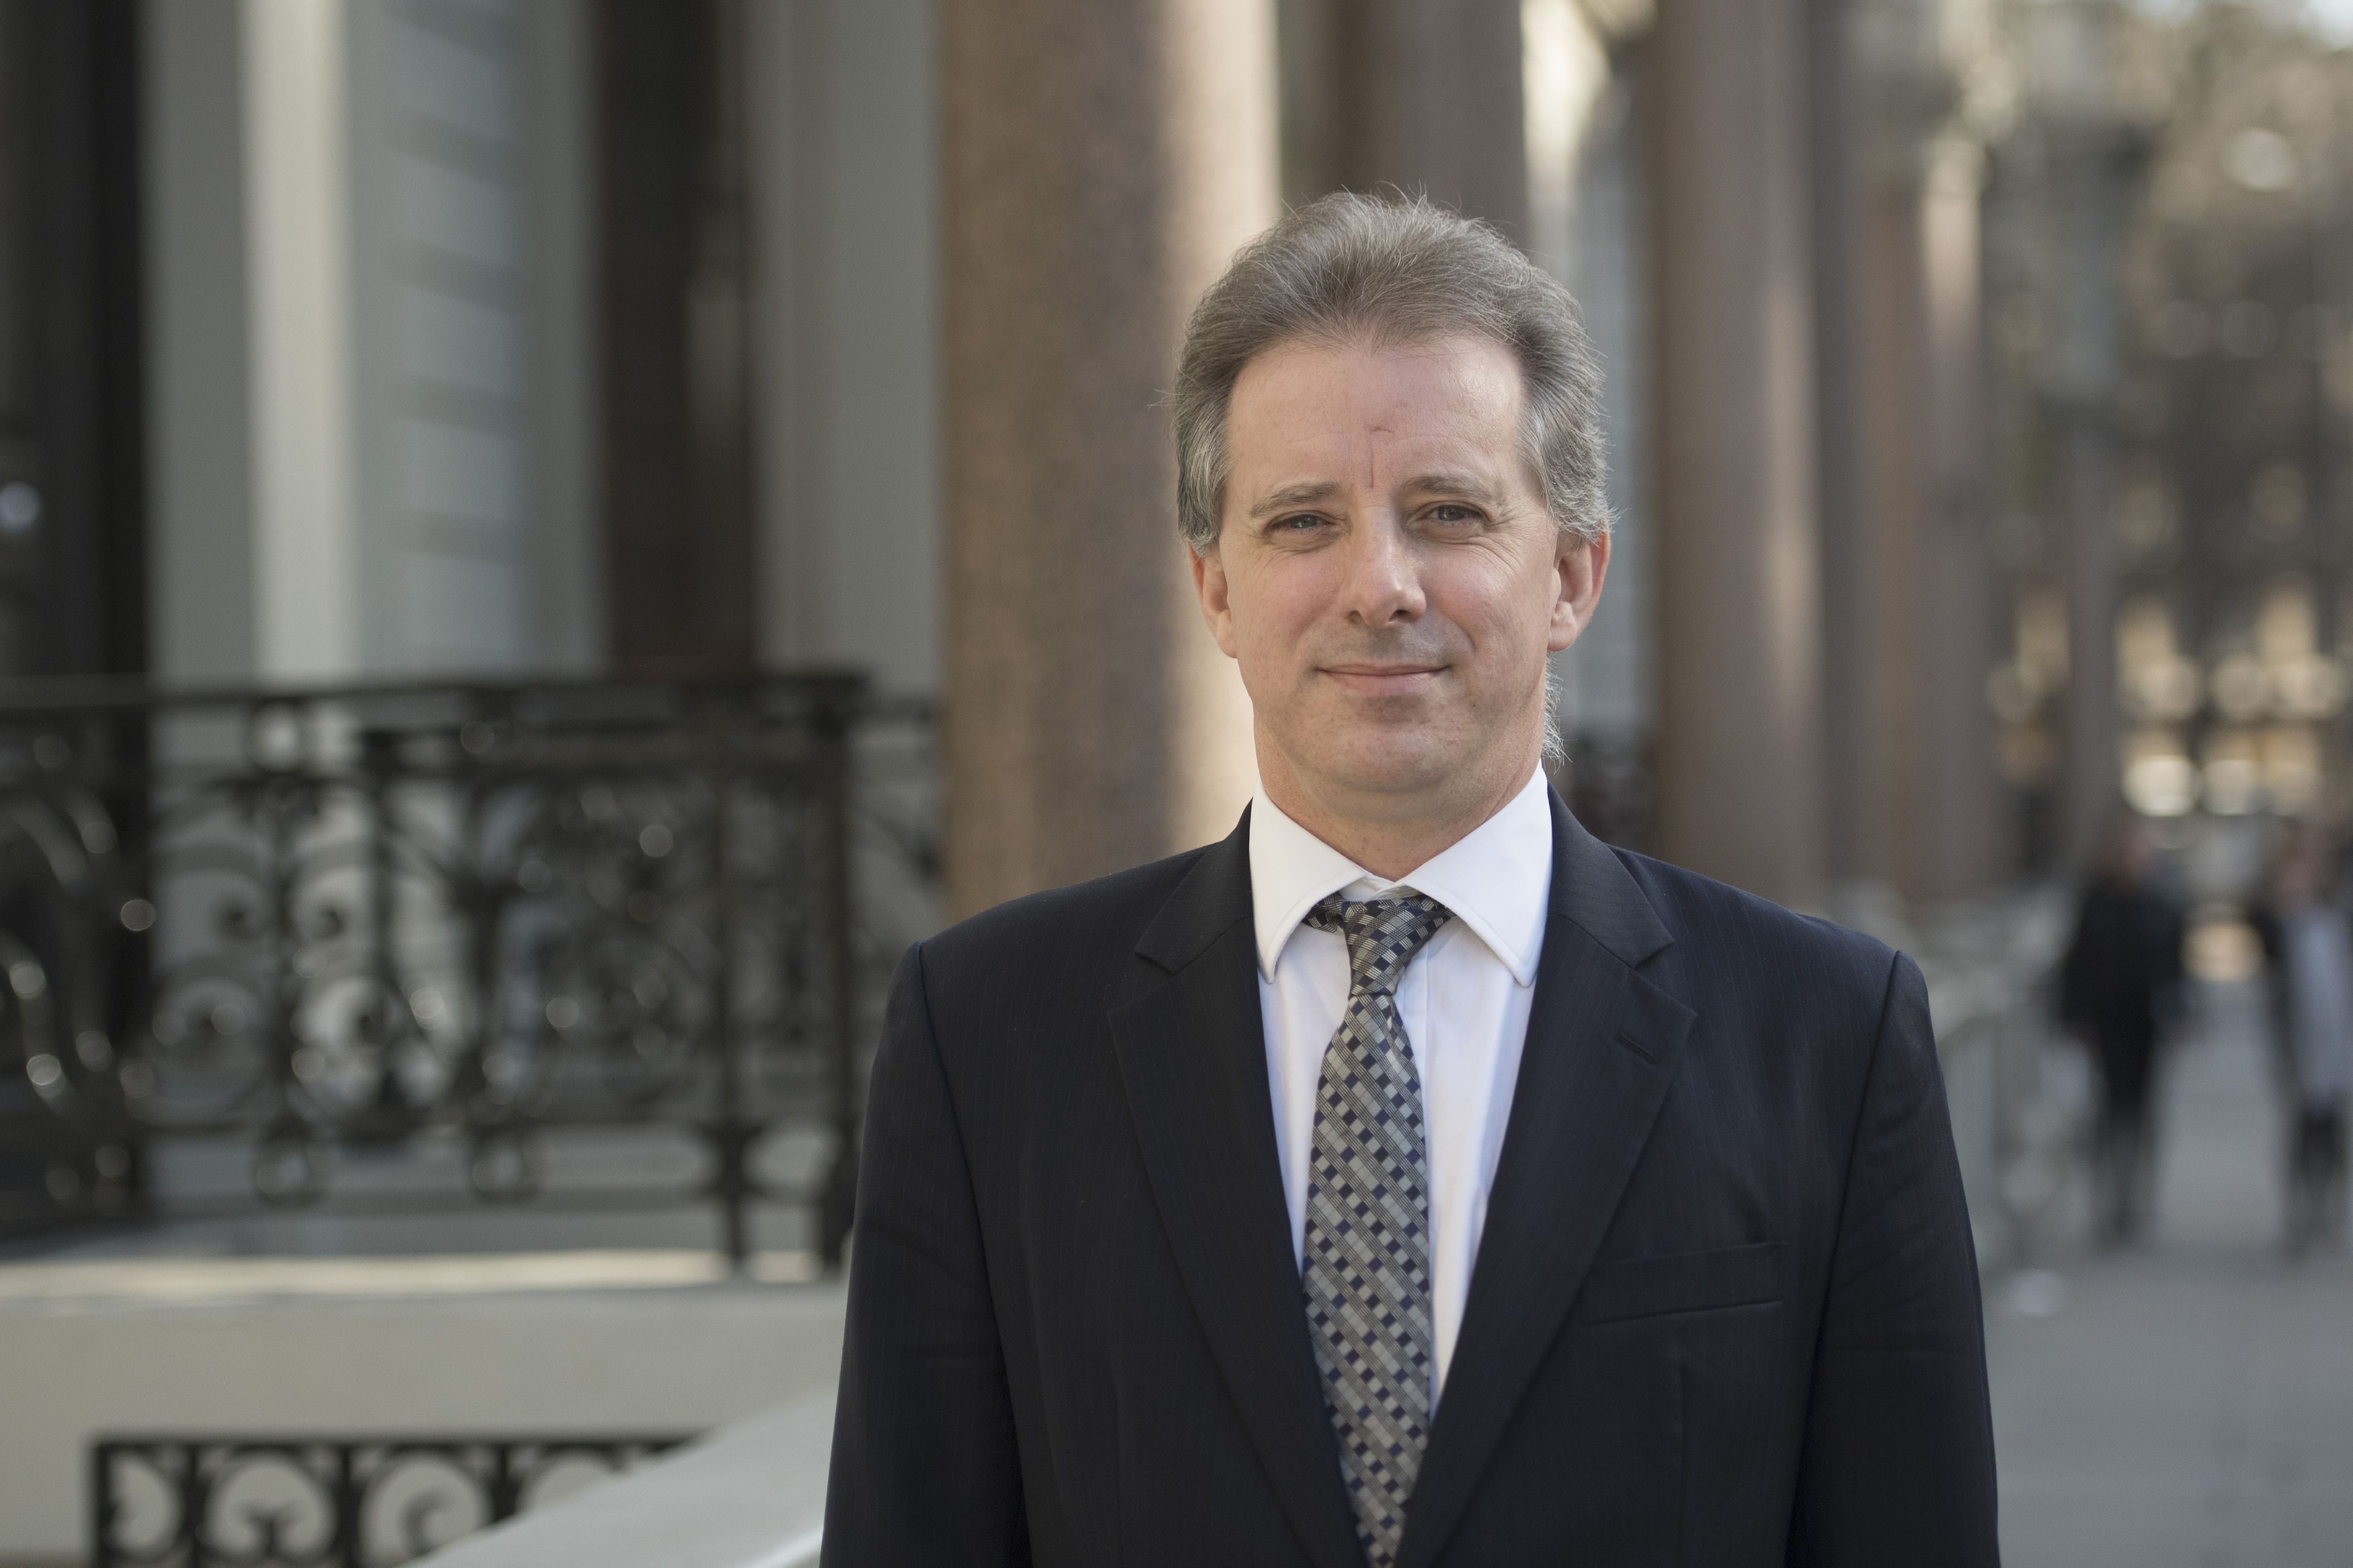 Christopher Steele, the former MI6 agent who set-up Orbis Business Intelligence and compiled a dossier on Donald Trump, in London where he spoke to the media for the first time.